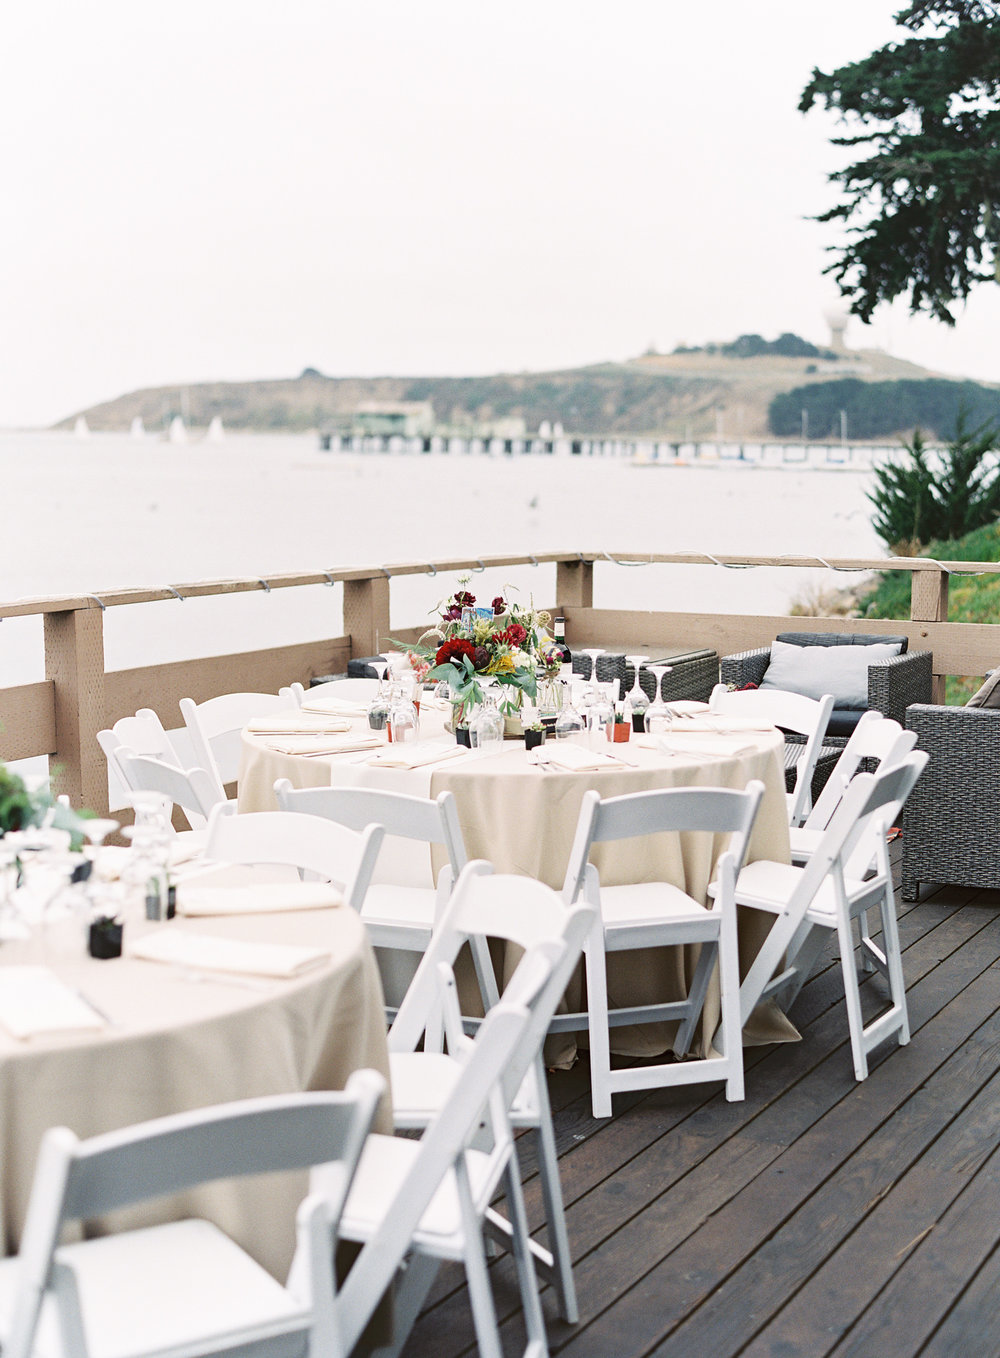 mavericks-event-center-wedding-in-half-moon-bay-california-61.jpg